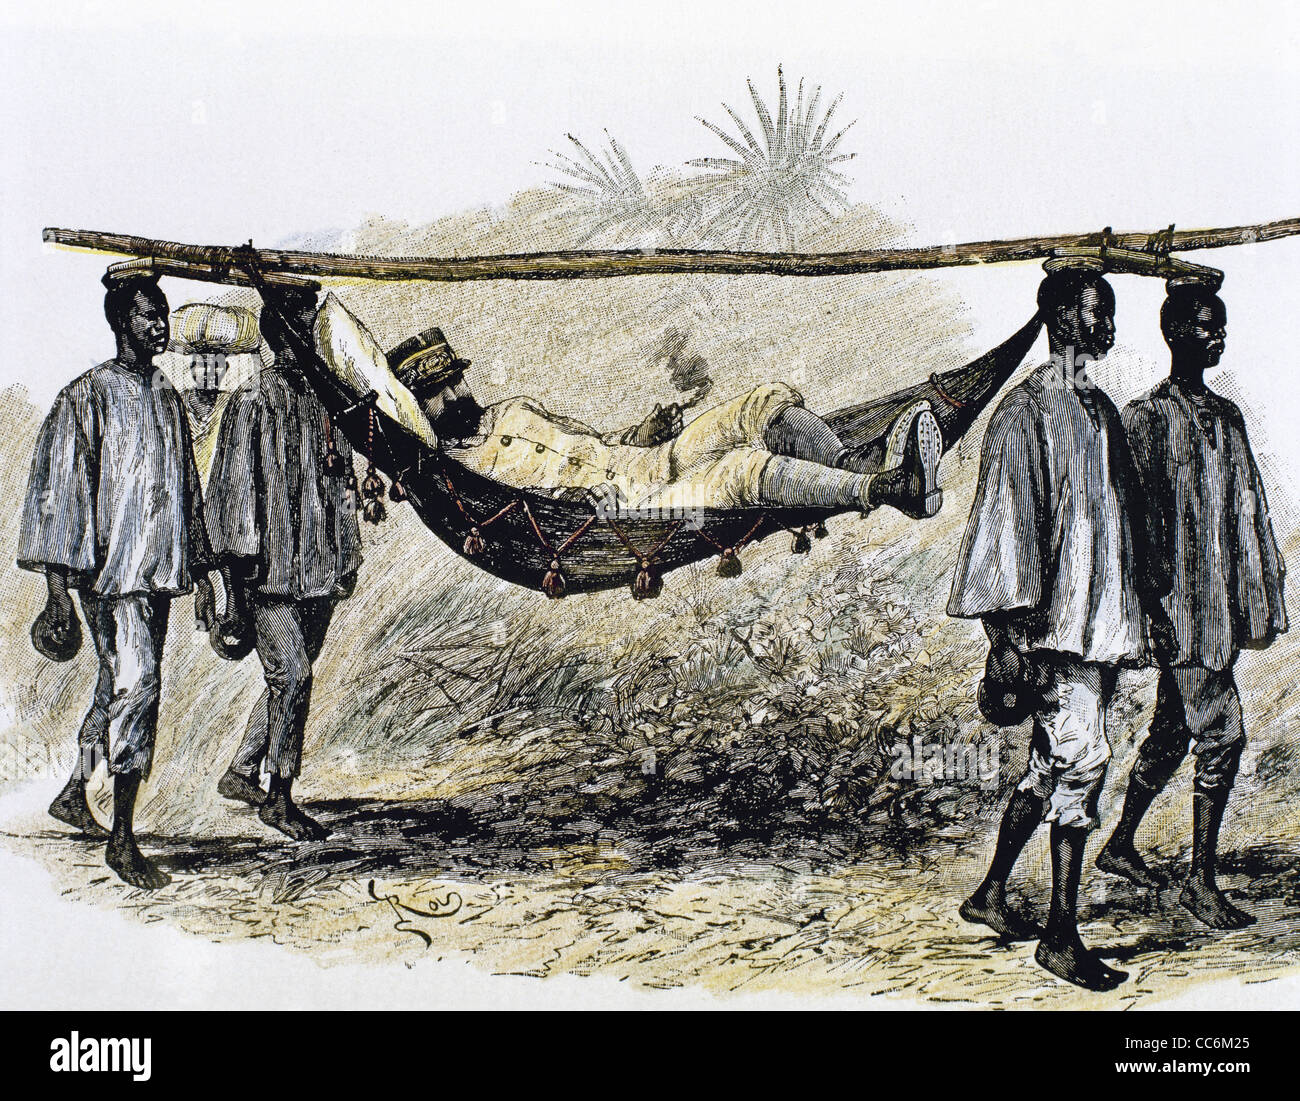 History of Africa. Colonialism. 19th century. European colonizer carried in a hammock by four African porters. - Stock Image